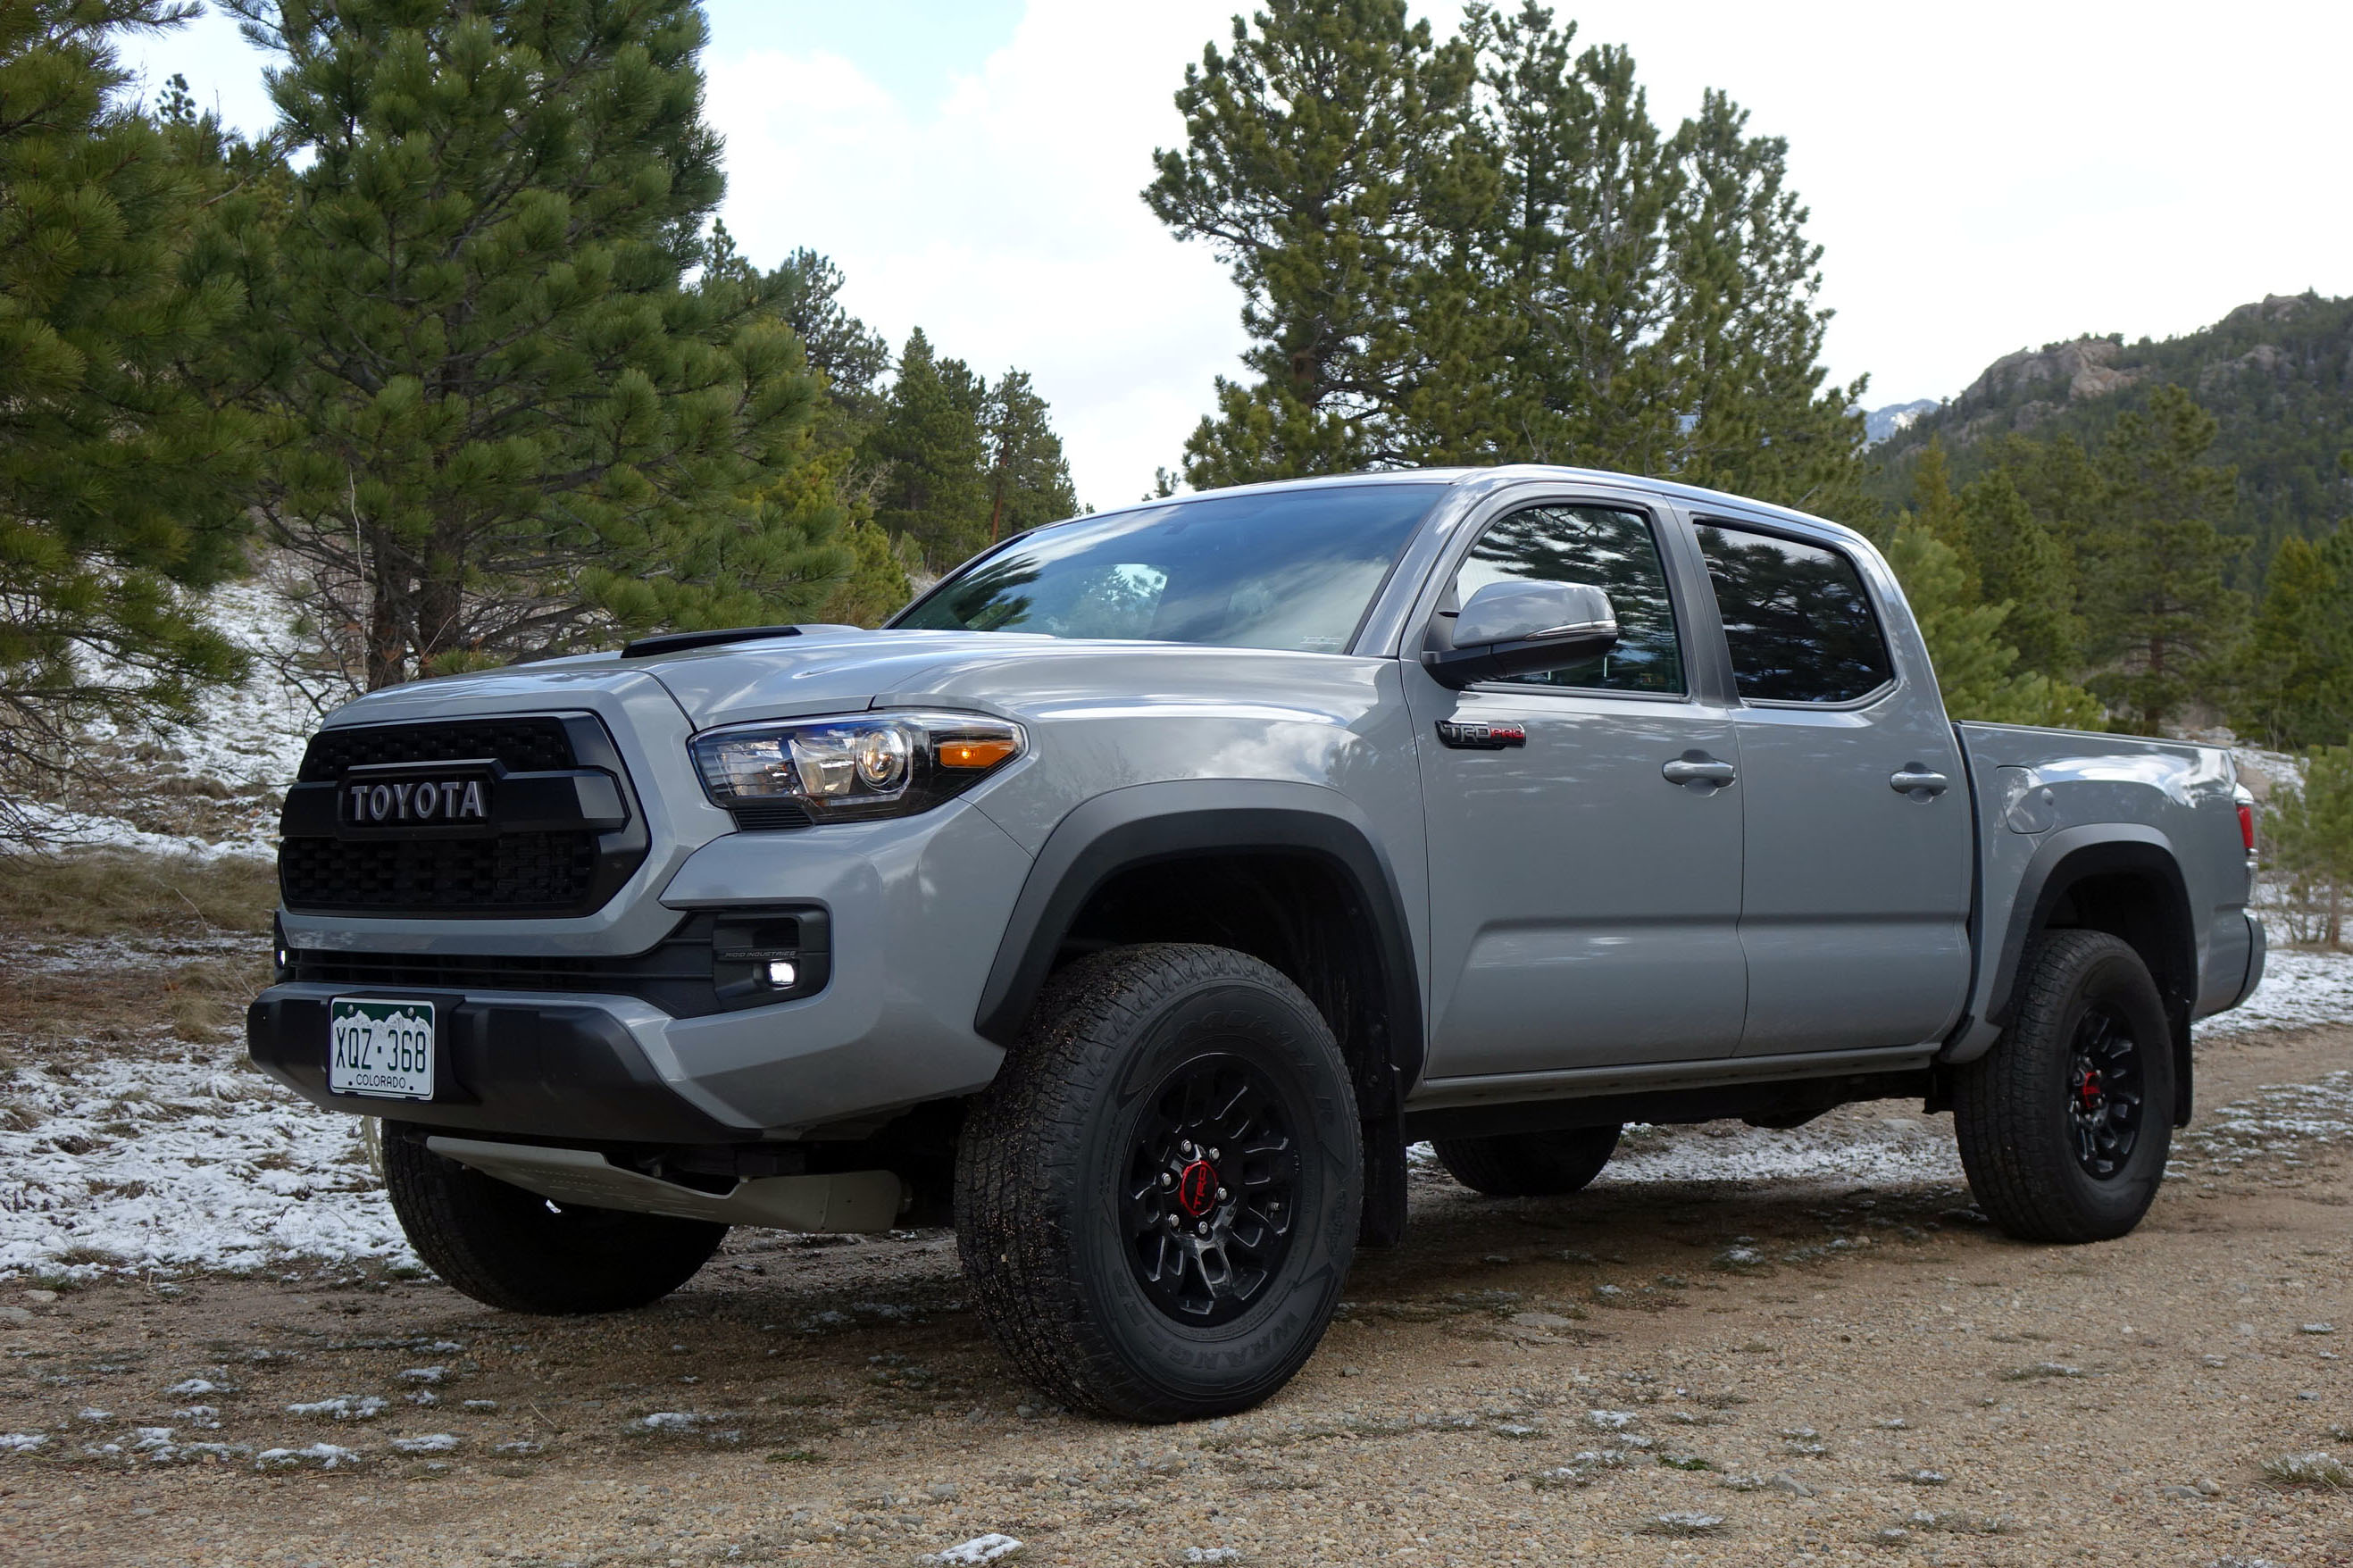 2017 Toyota Tacoma Trd Pro First Drive Review The Everyman S Raptor